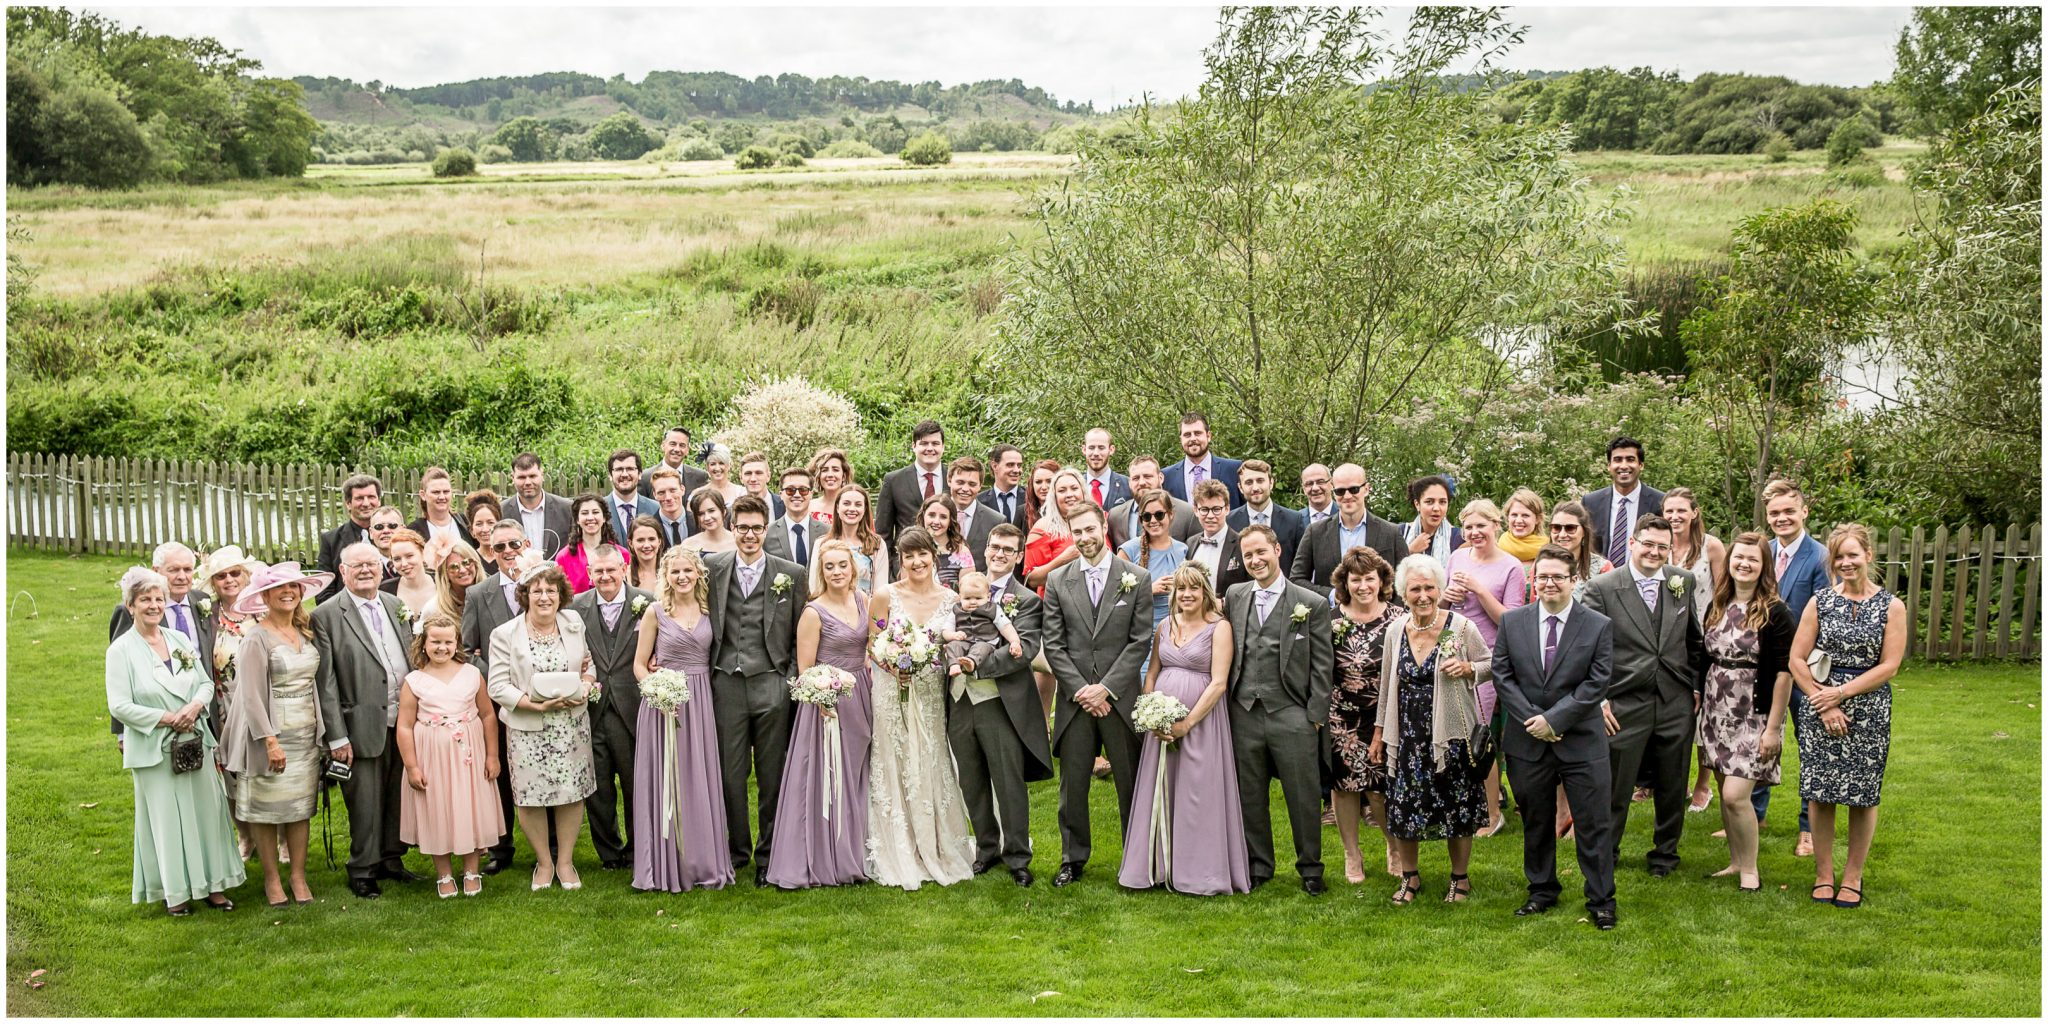 Sopley Mill wedding photography groiup phot with water meadows in background